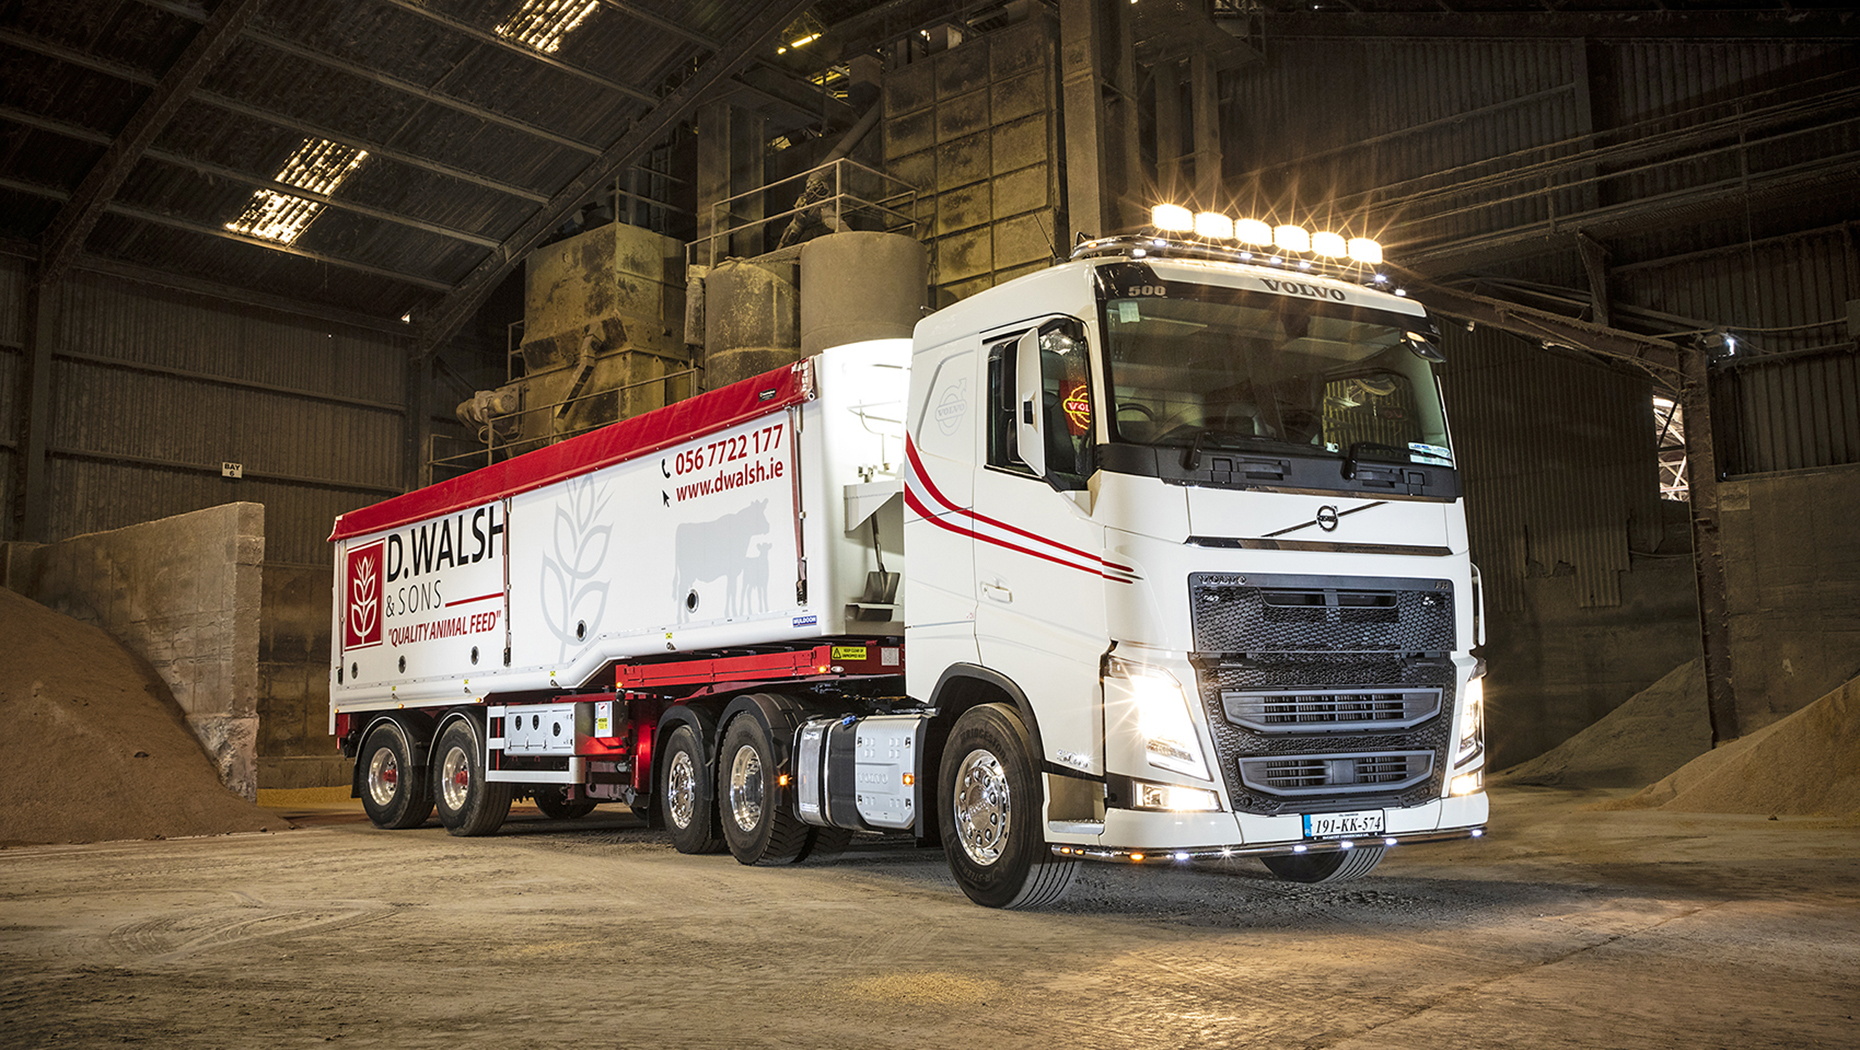 D Walsh & Sons access all areas with its latest Volvo FH tag axle tractor unit